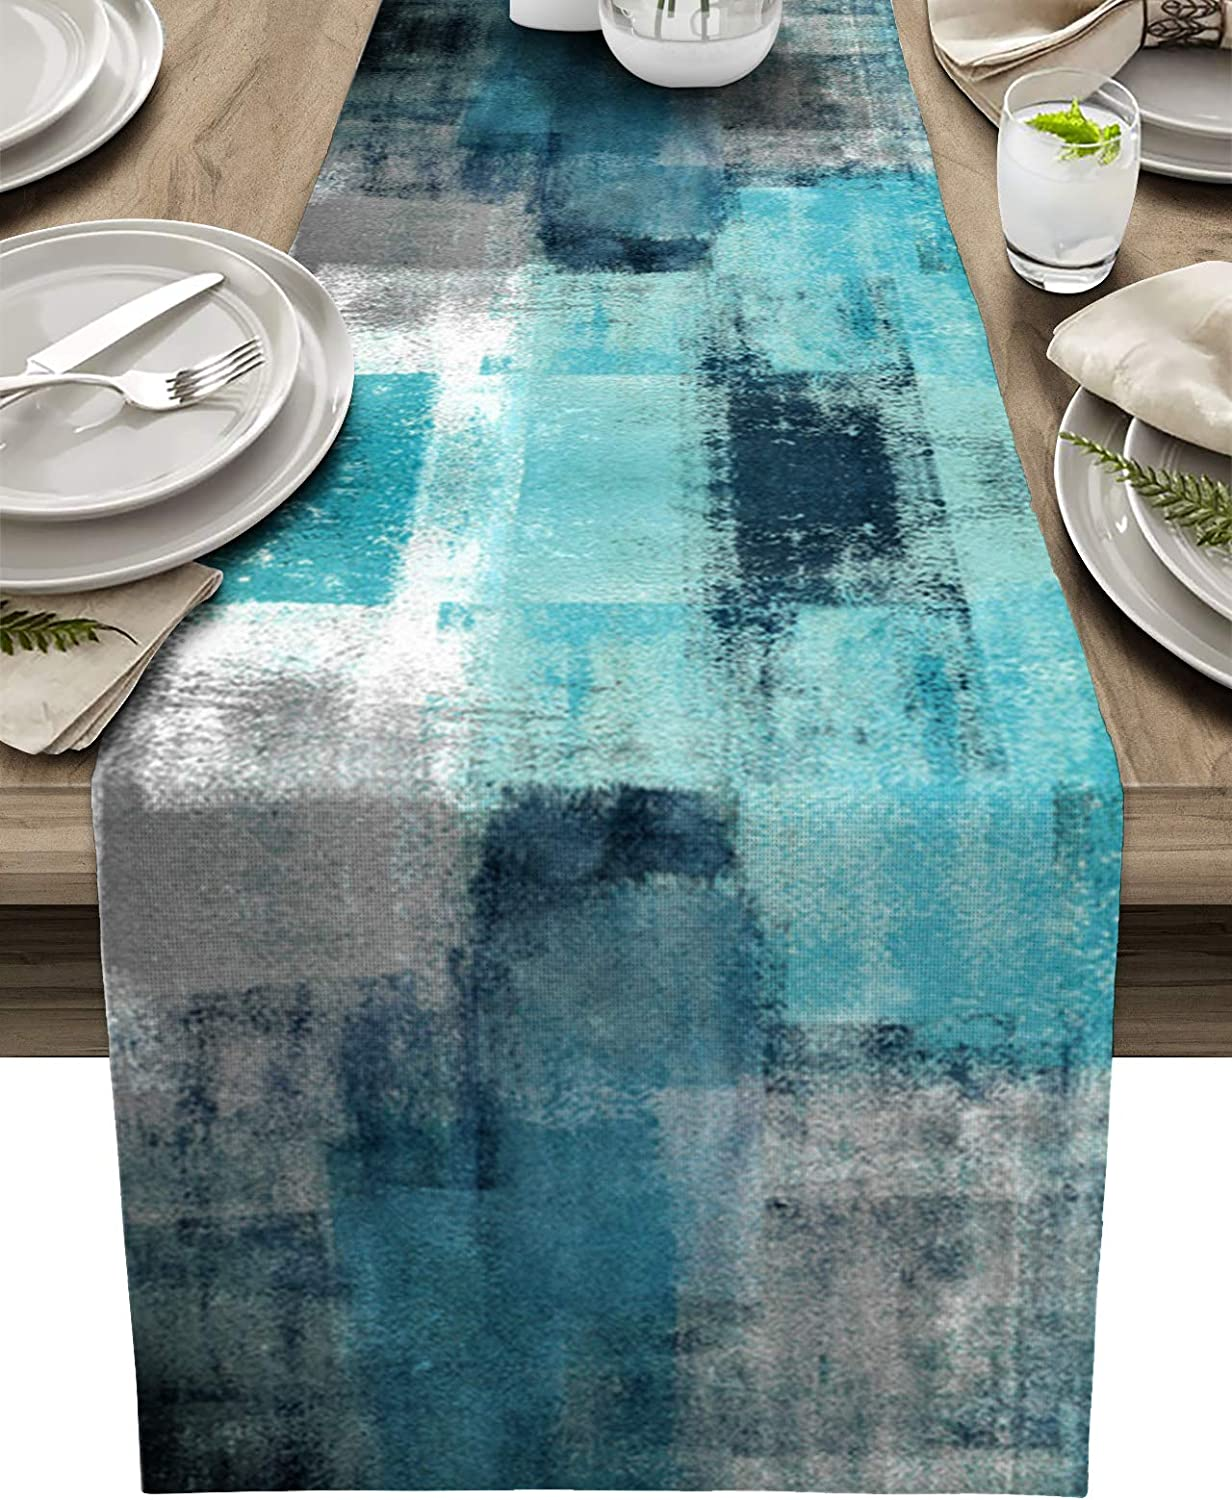 BINGIGO Teal Coffee Table Runner 70 inches Long Turquois Dining Table Runner for Wedding Birthday Party,Thanksgiving Holiday Dinner Decor, Farmhouse Style 13x70inch